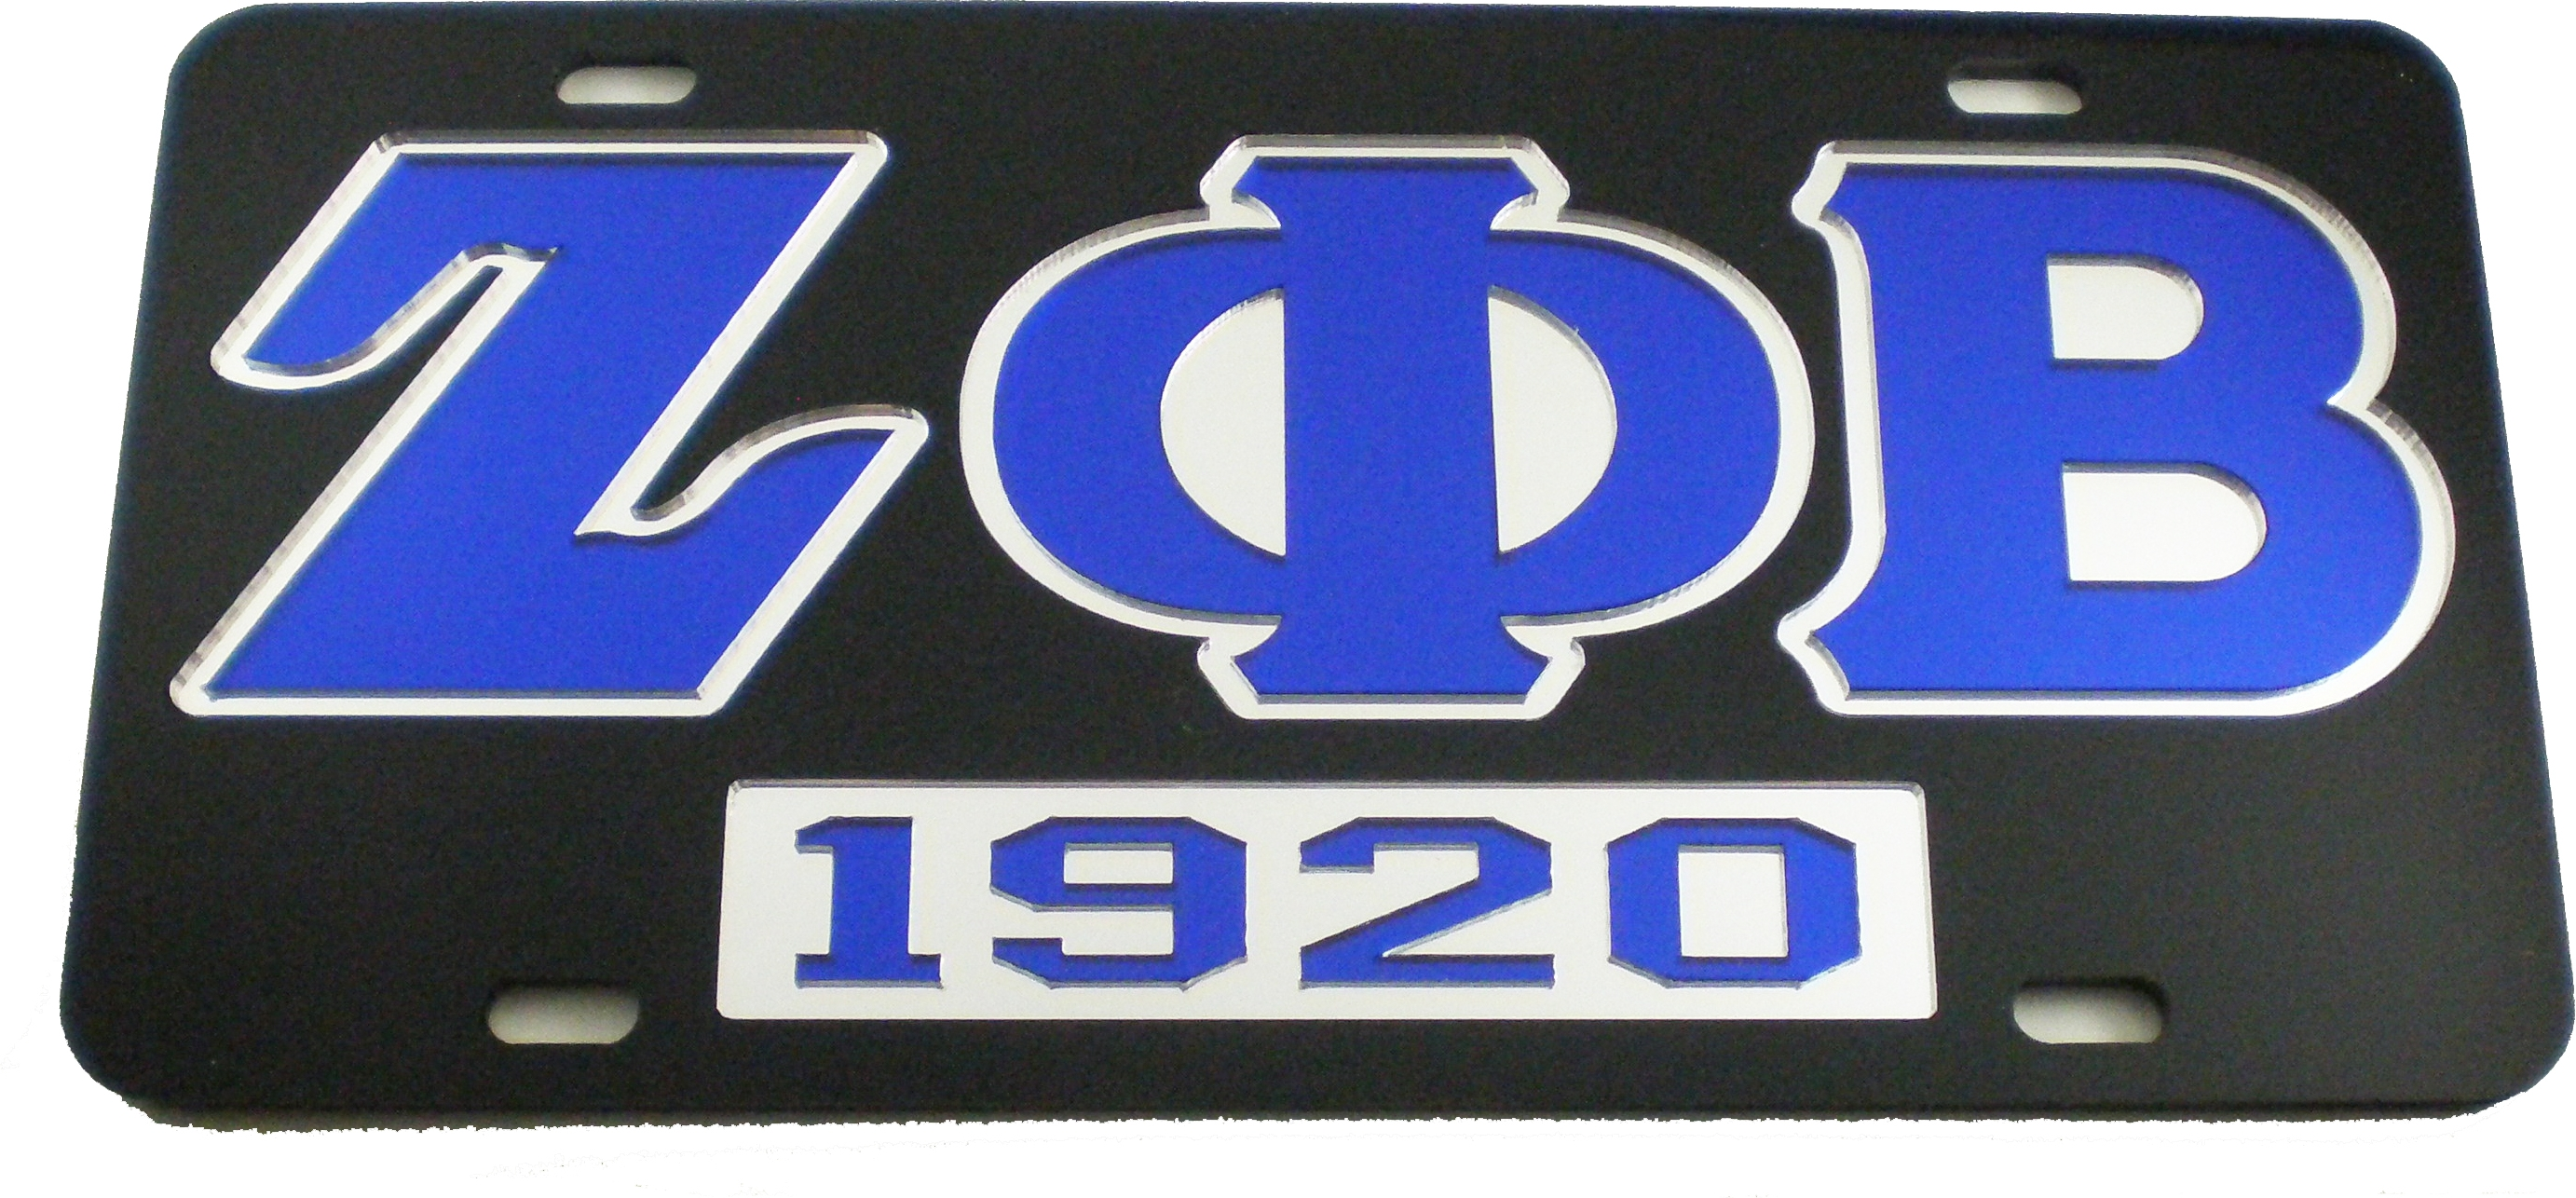 Zeta Phi Beta 1920 Mirror Insert Car Tag